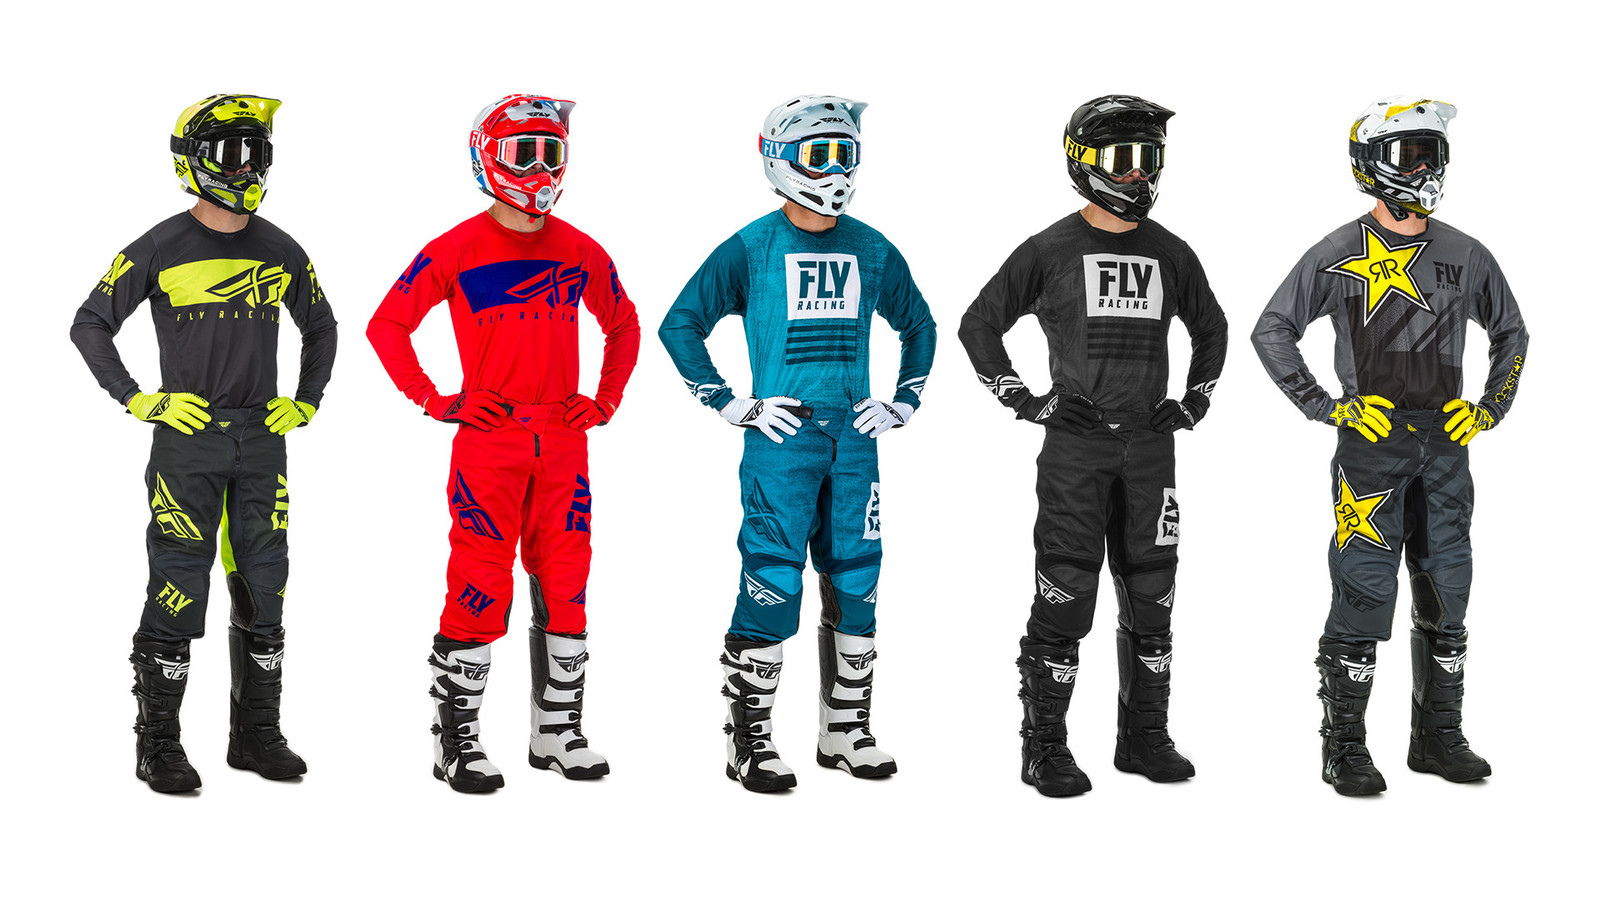 2019.5 Kinetic Mesh Racewear (Shield, Noiz, Rockstar)